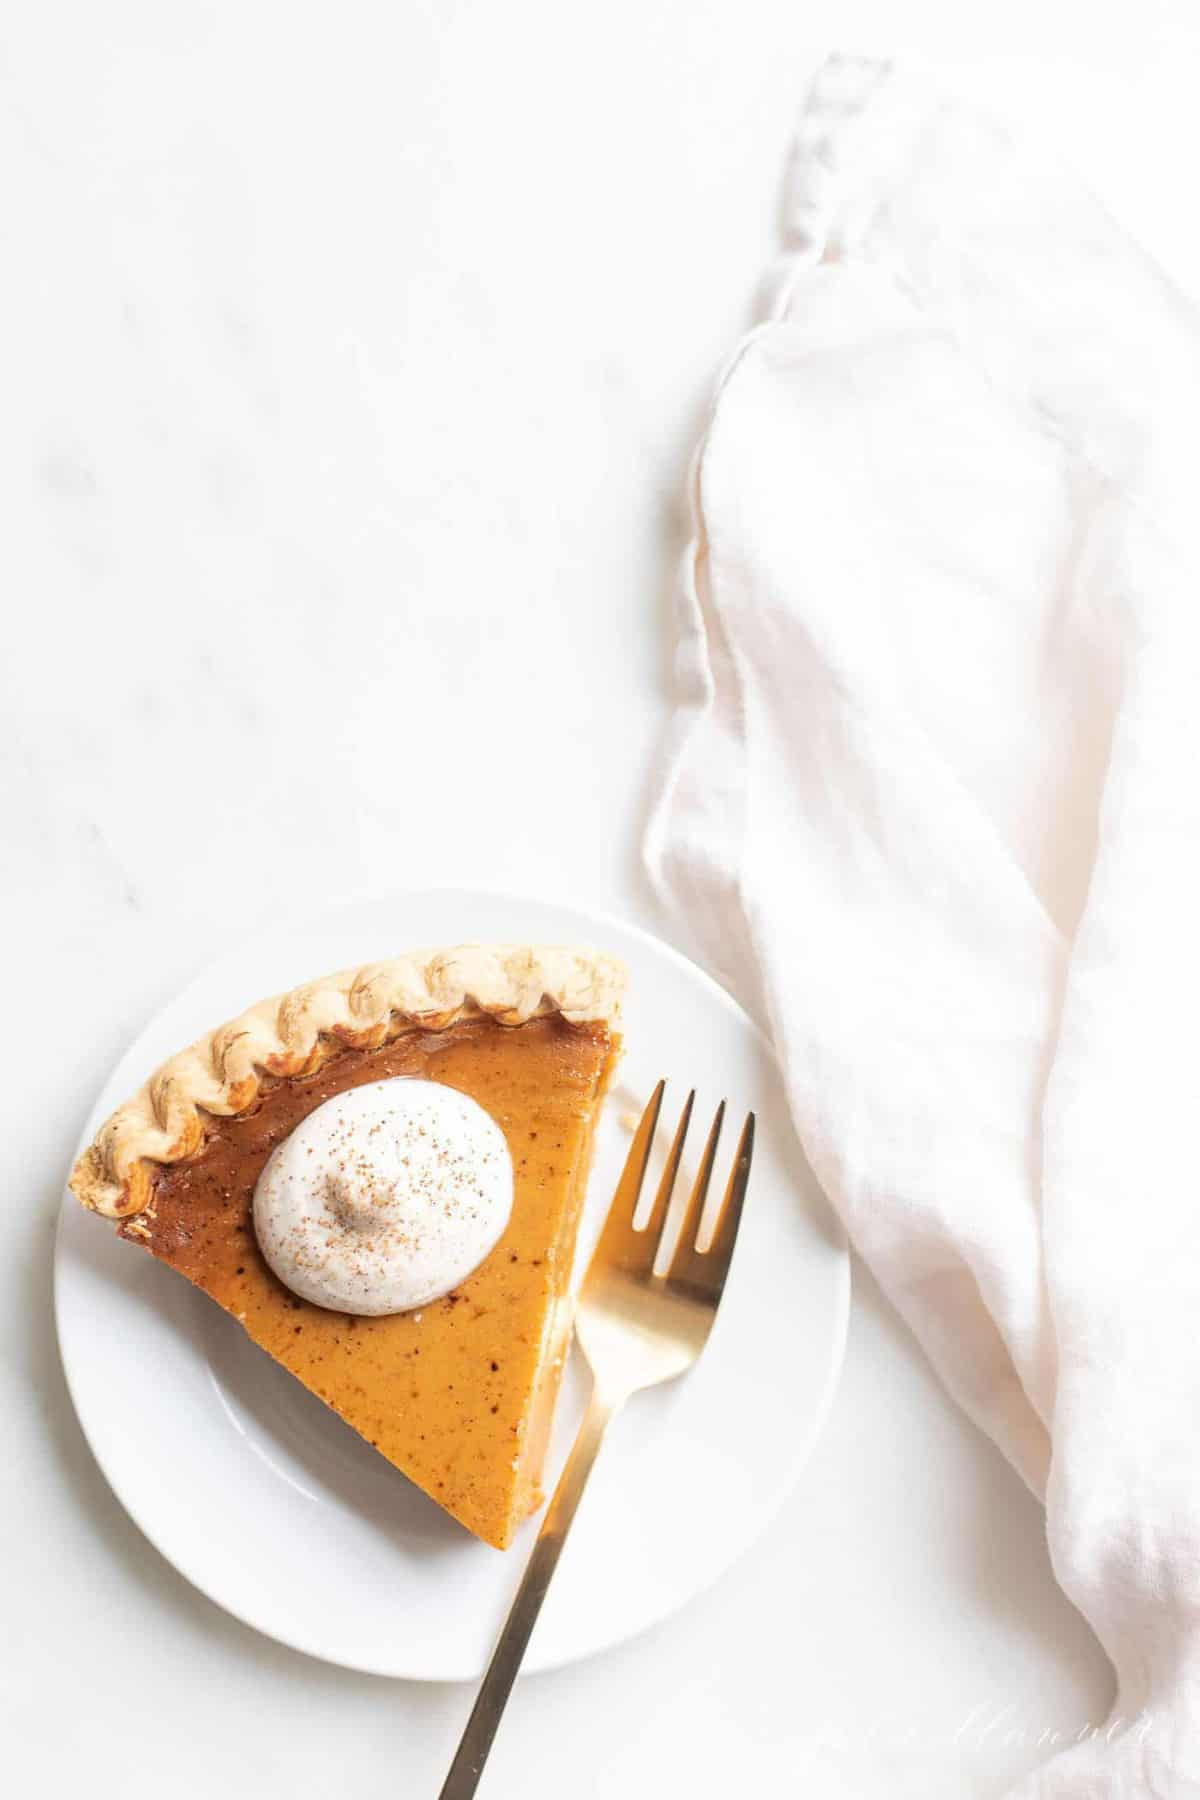 A slice of pumpkin pie with a dollop of whipped cream, placed on a white plate, gold fork and napkin to the side.